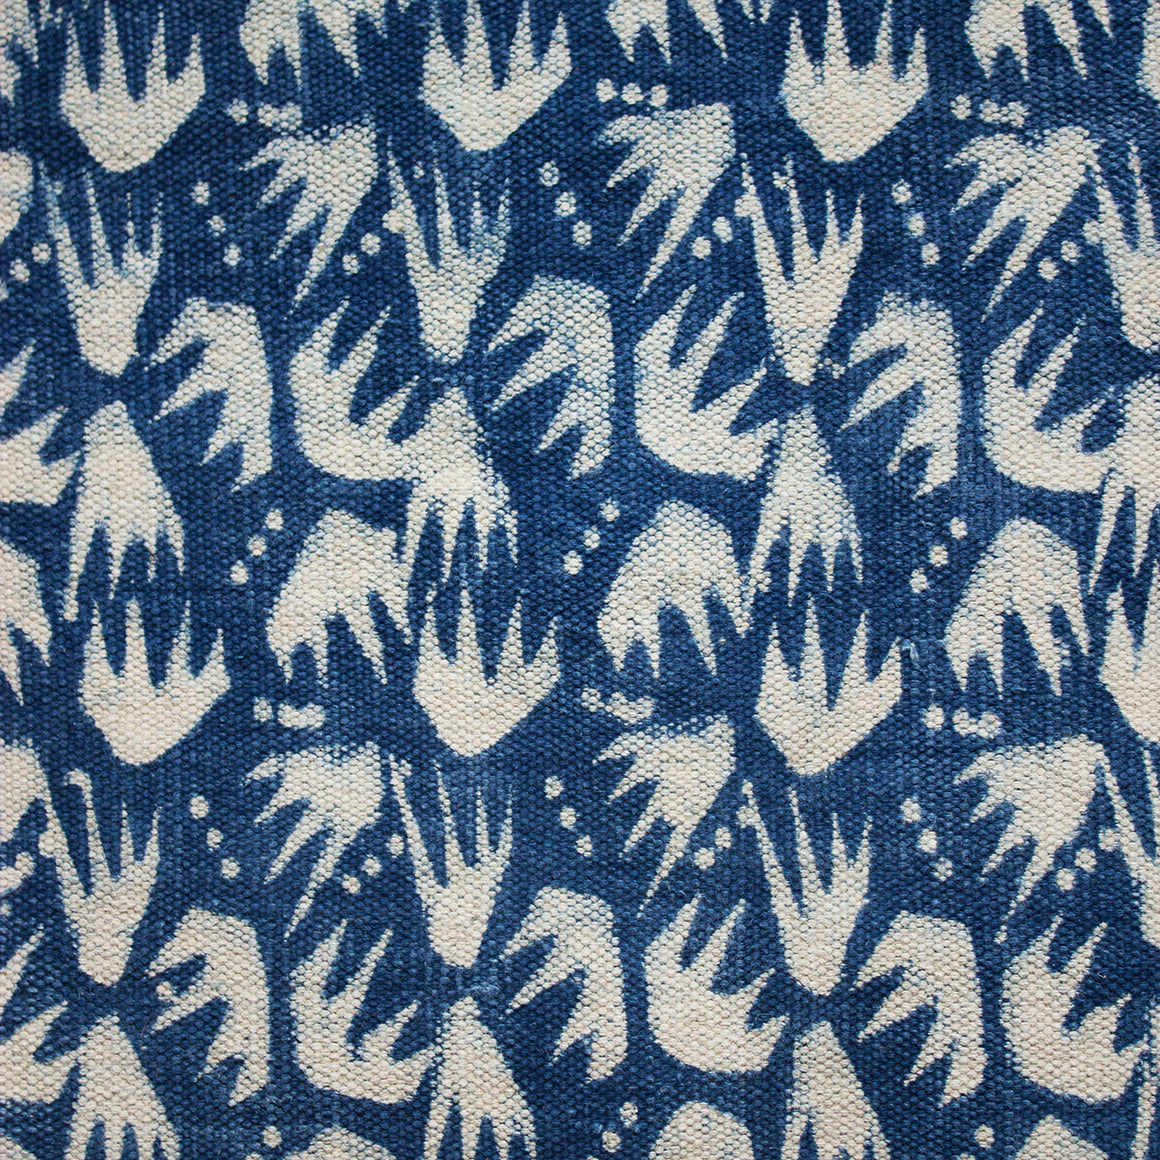 Indian Indigo Runner Block Printed 60cm x 180cm Rug 'Combs'